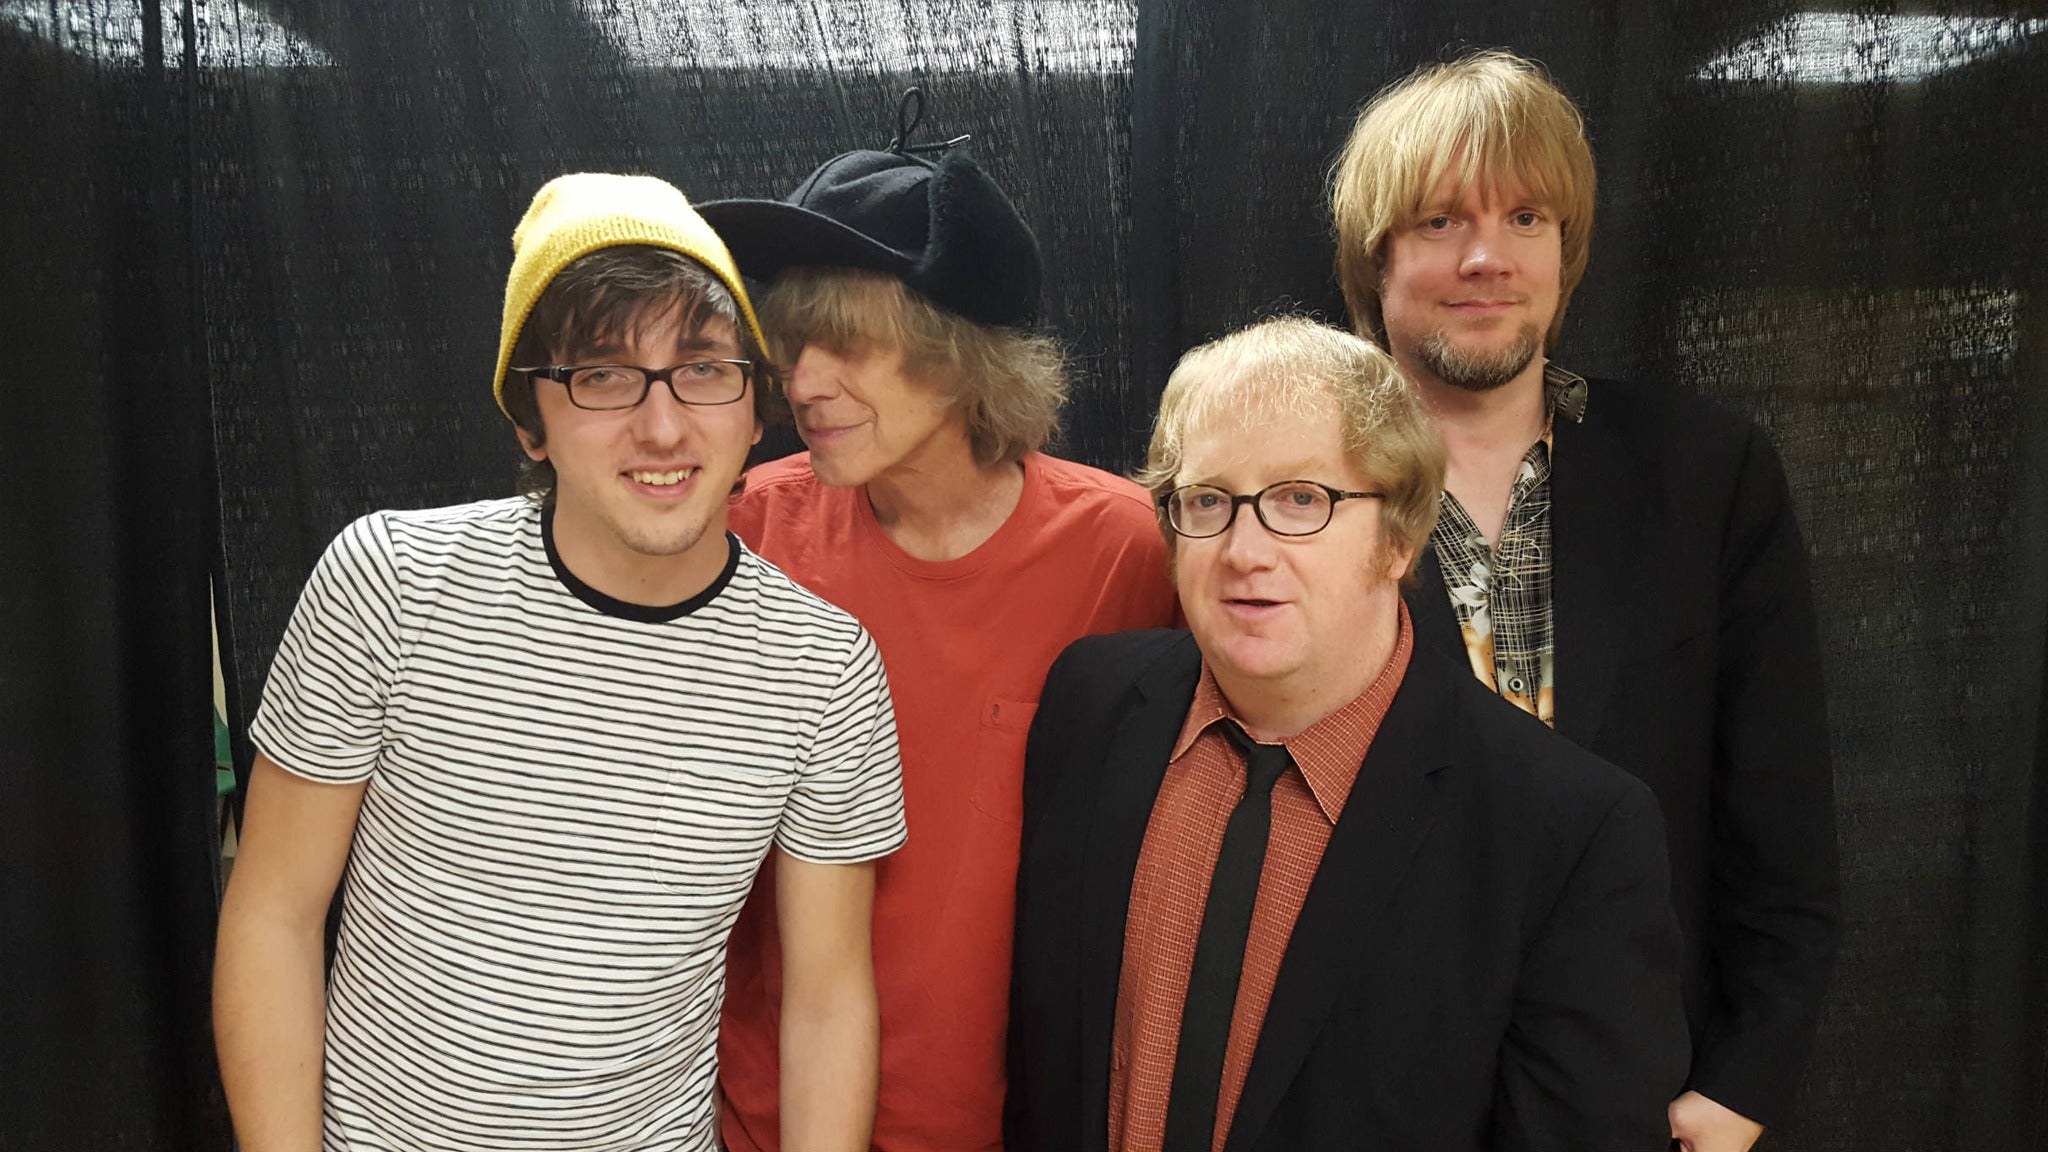 NRBQ with Ohio Valley Salvage